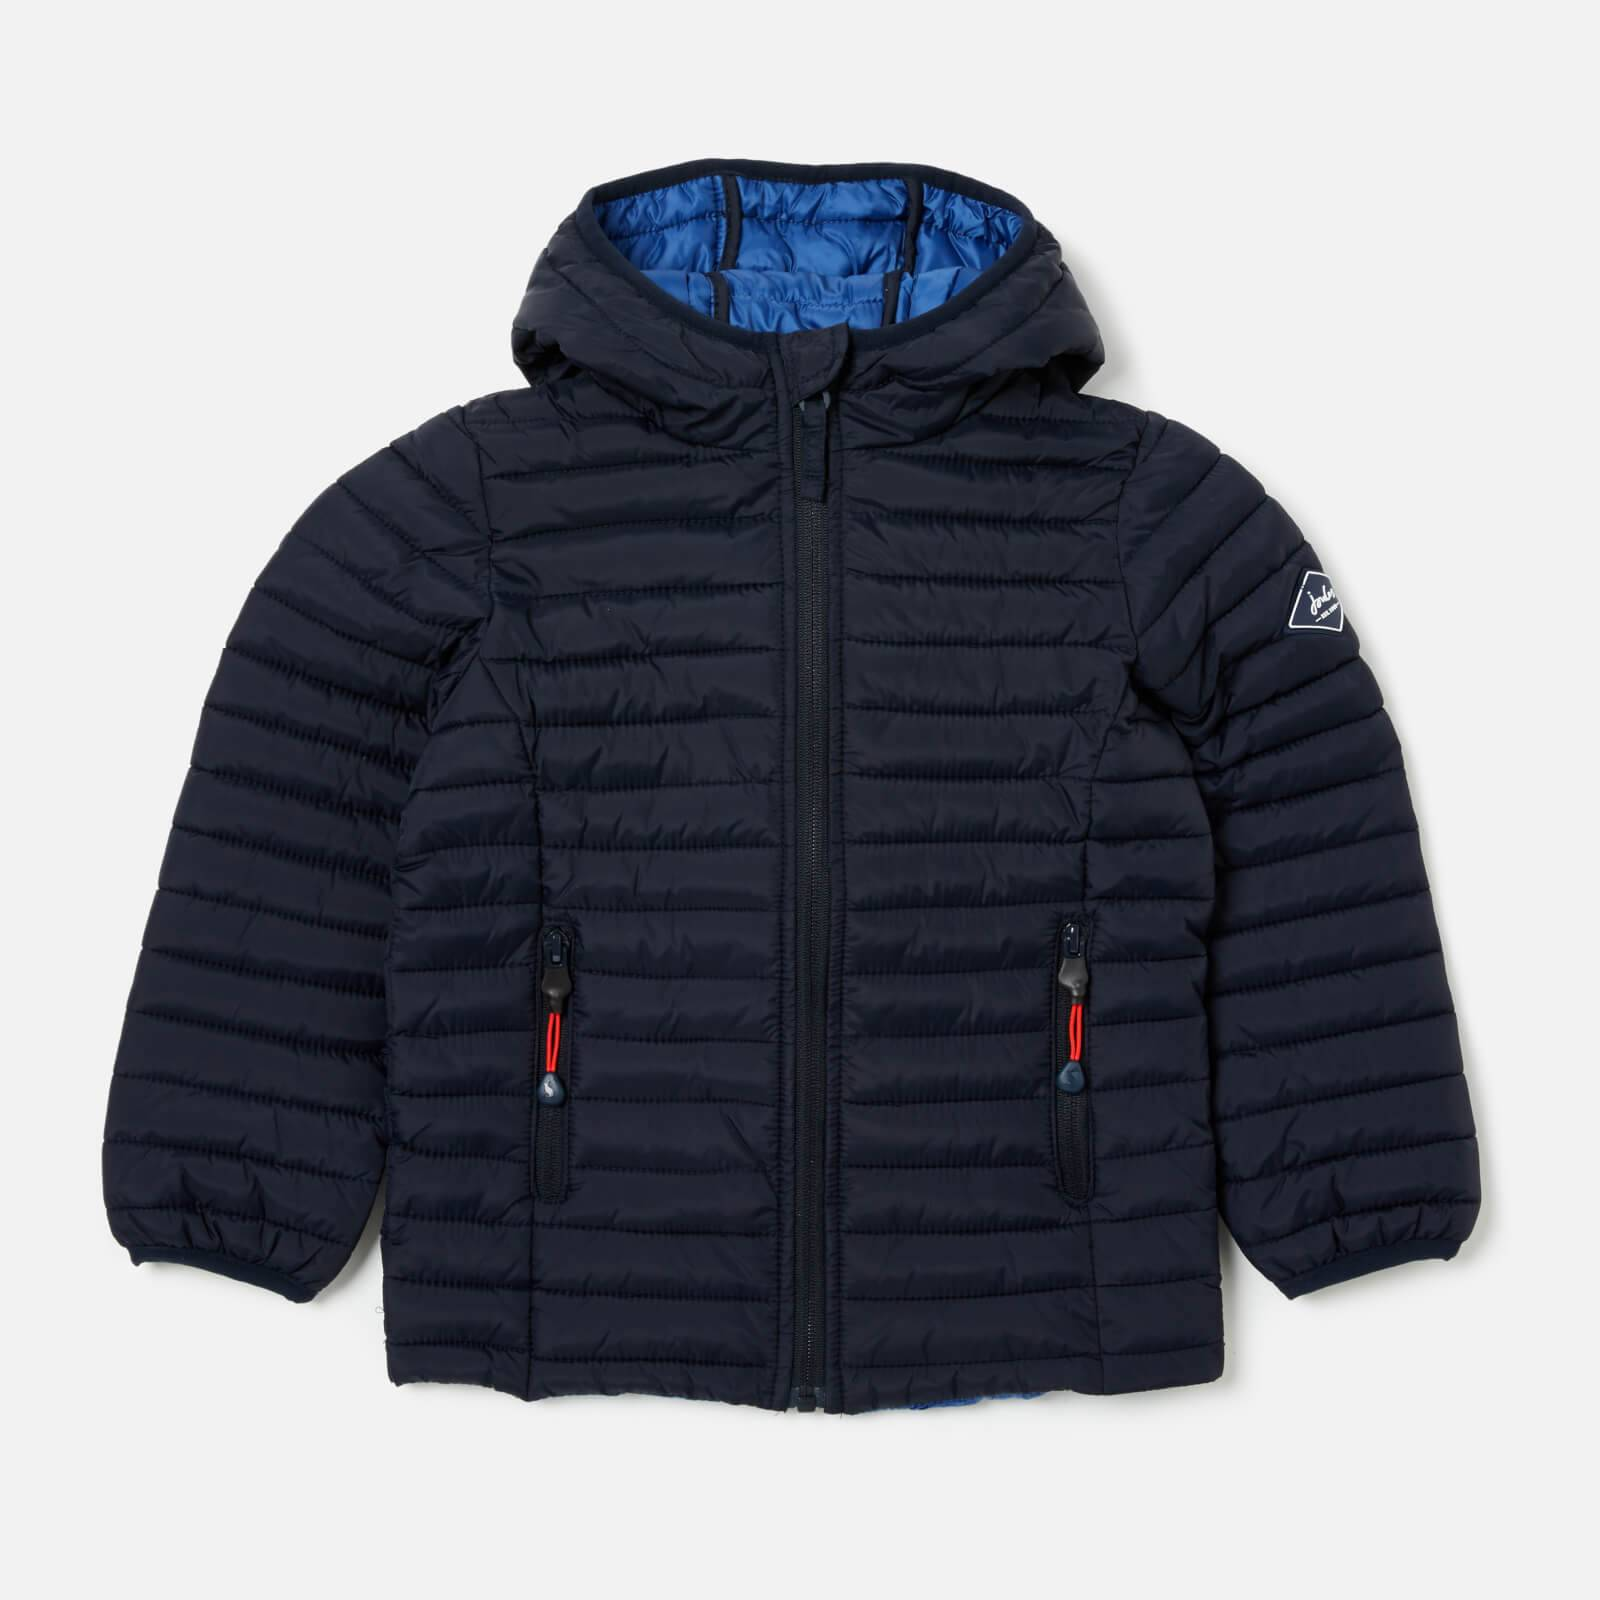 Joules Boys' Cairn Padded Jacket - Marine Navy - 4 Years - Blue